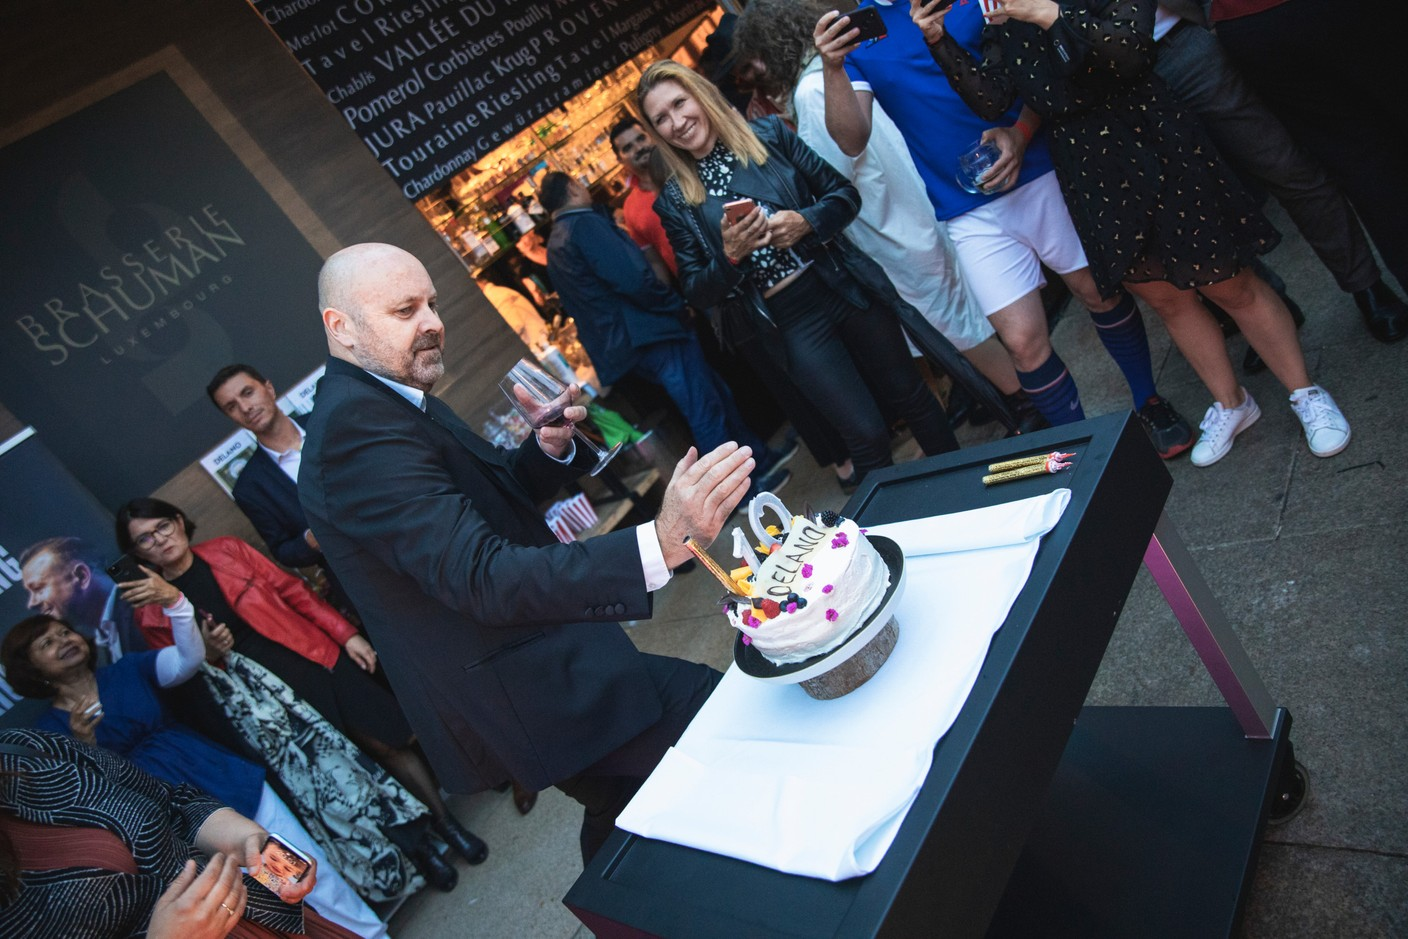 Almost time to cut the cake. Simon Verjus/Maison Moderne